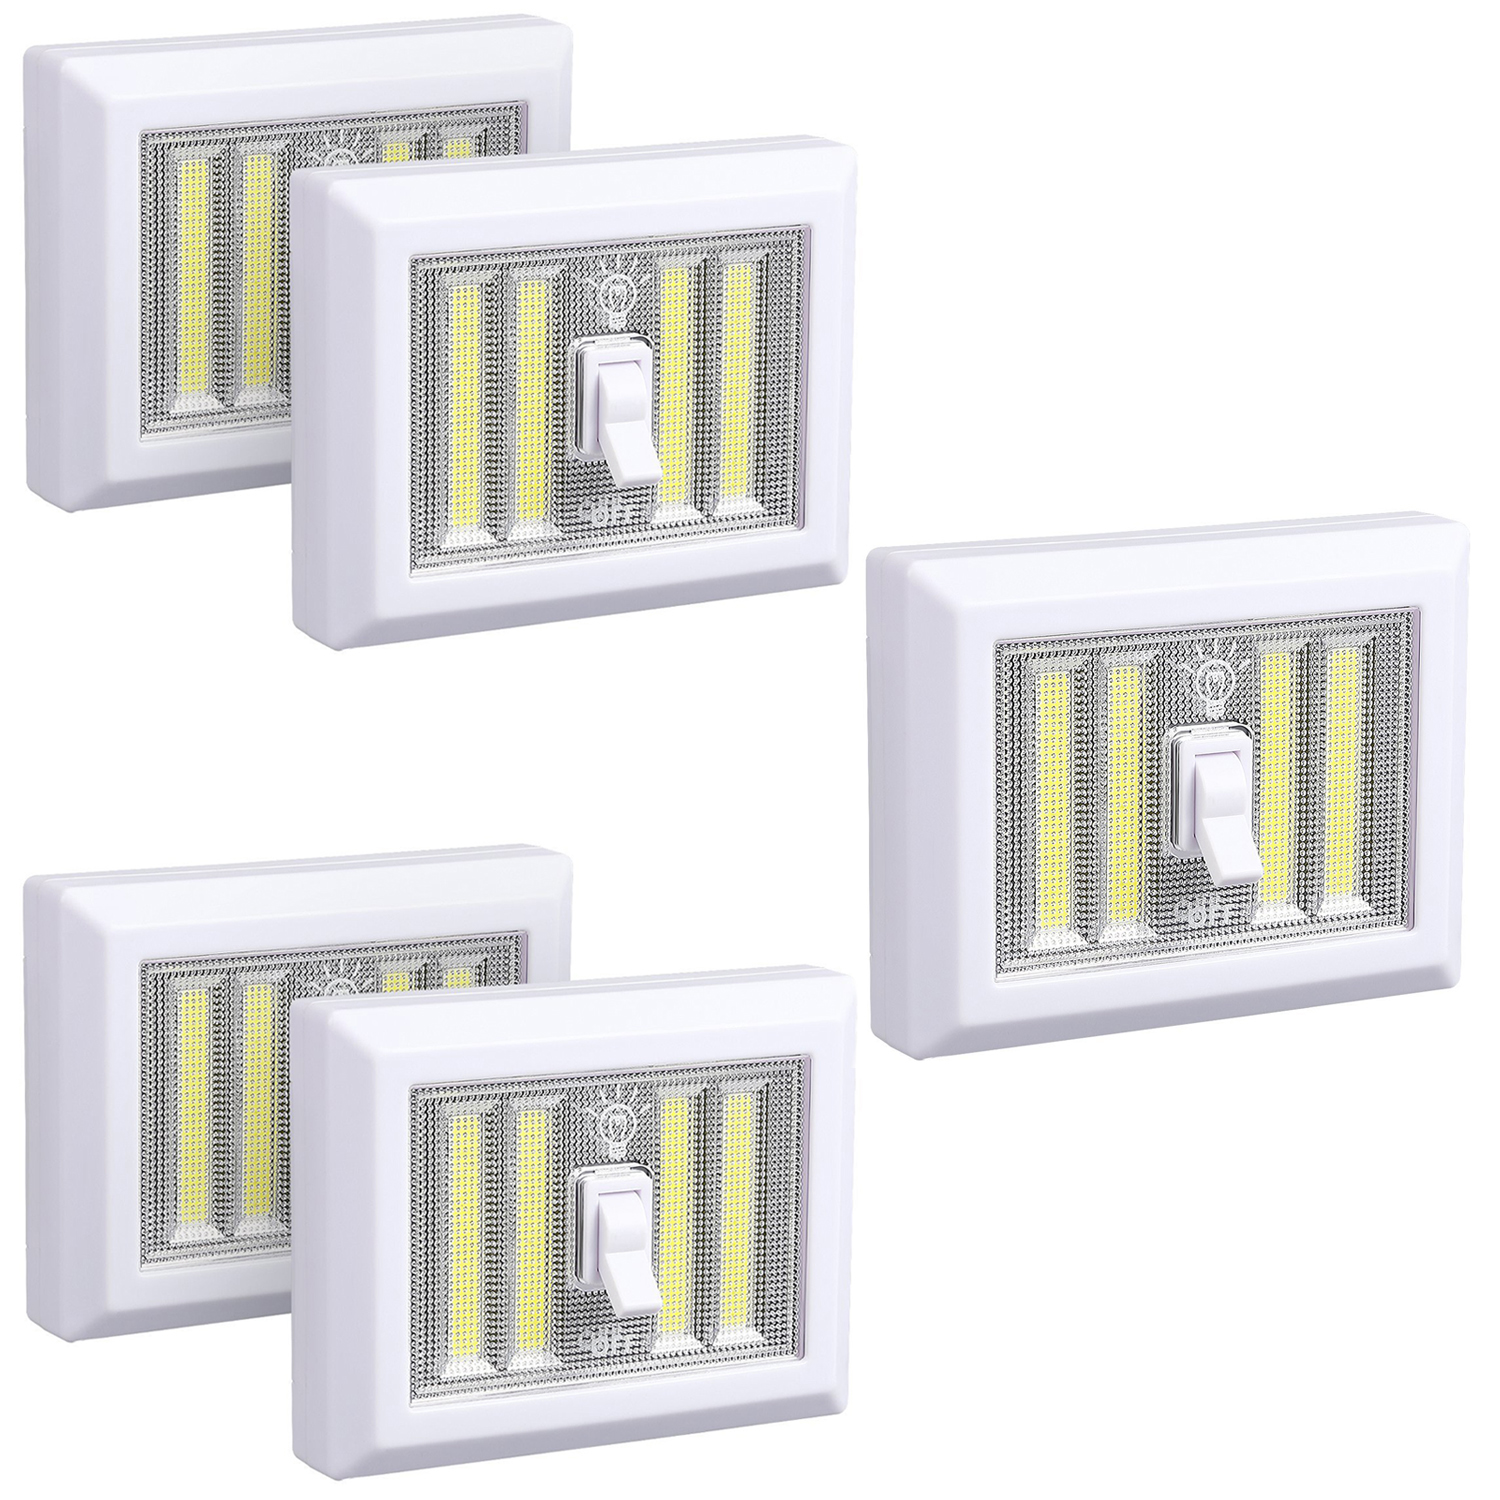 EEEKit Cordless Switch Lights 5-Pack, 4 COB LED Portable Night light, Wireless Wall Switch Operated Closet Lamp Tap Light Mount for Bedroom Bedroom/Closets/Cabinet/Shelf